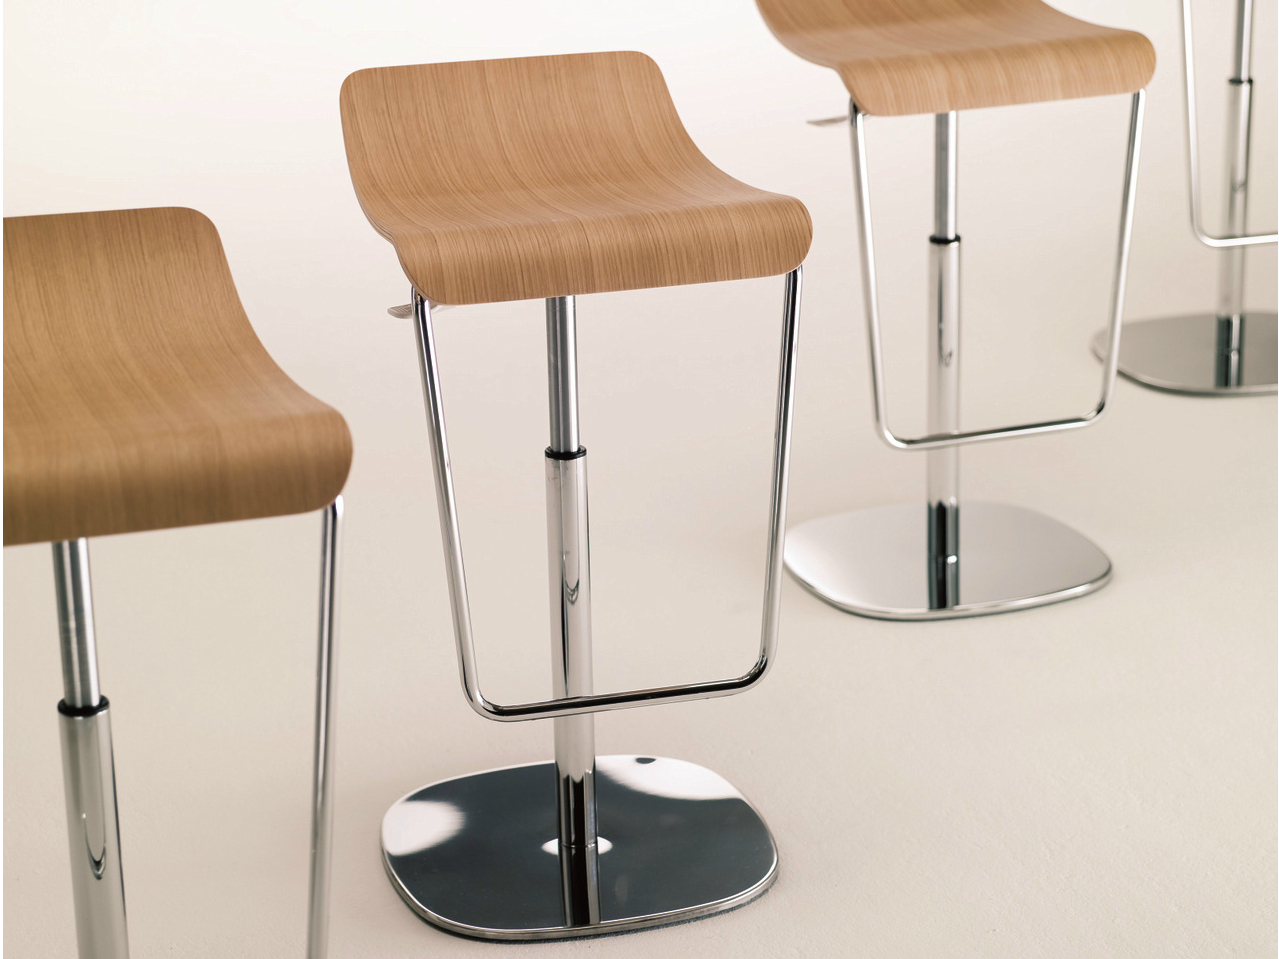 Swivel Height Adjustable Wooden Stool MIROu0027 By Riva 1920 Design C.R.u0026S.  RIVA1920